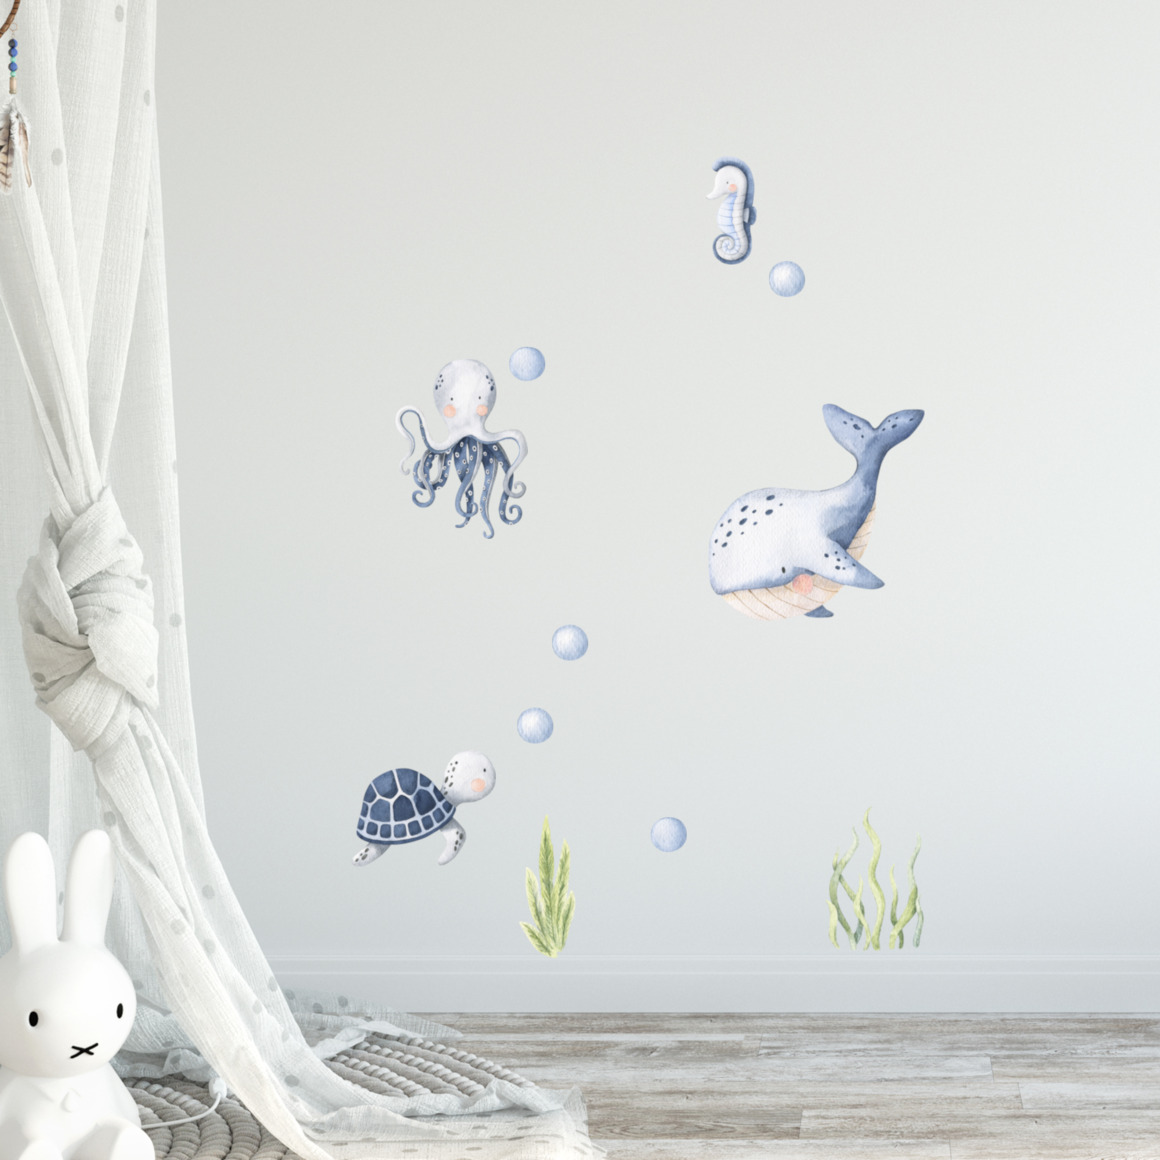 Fabric wall decals - Under the sea   Trada Marketplace